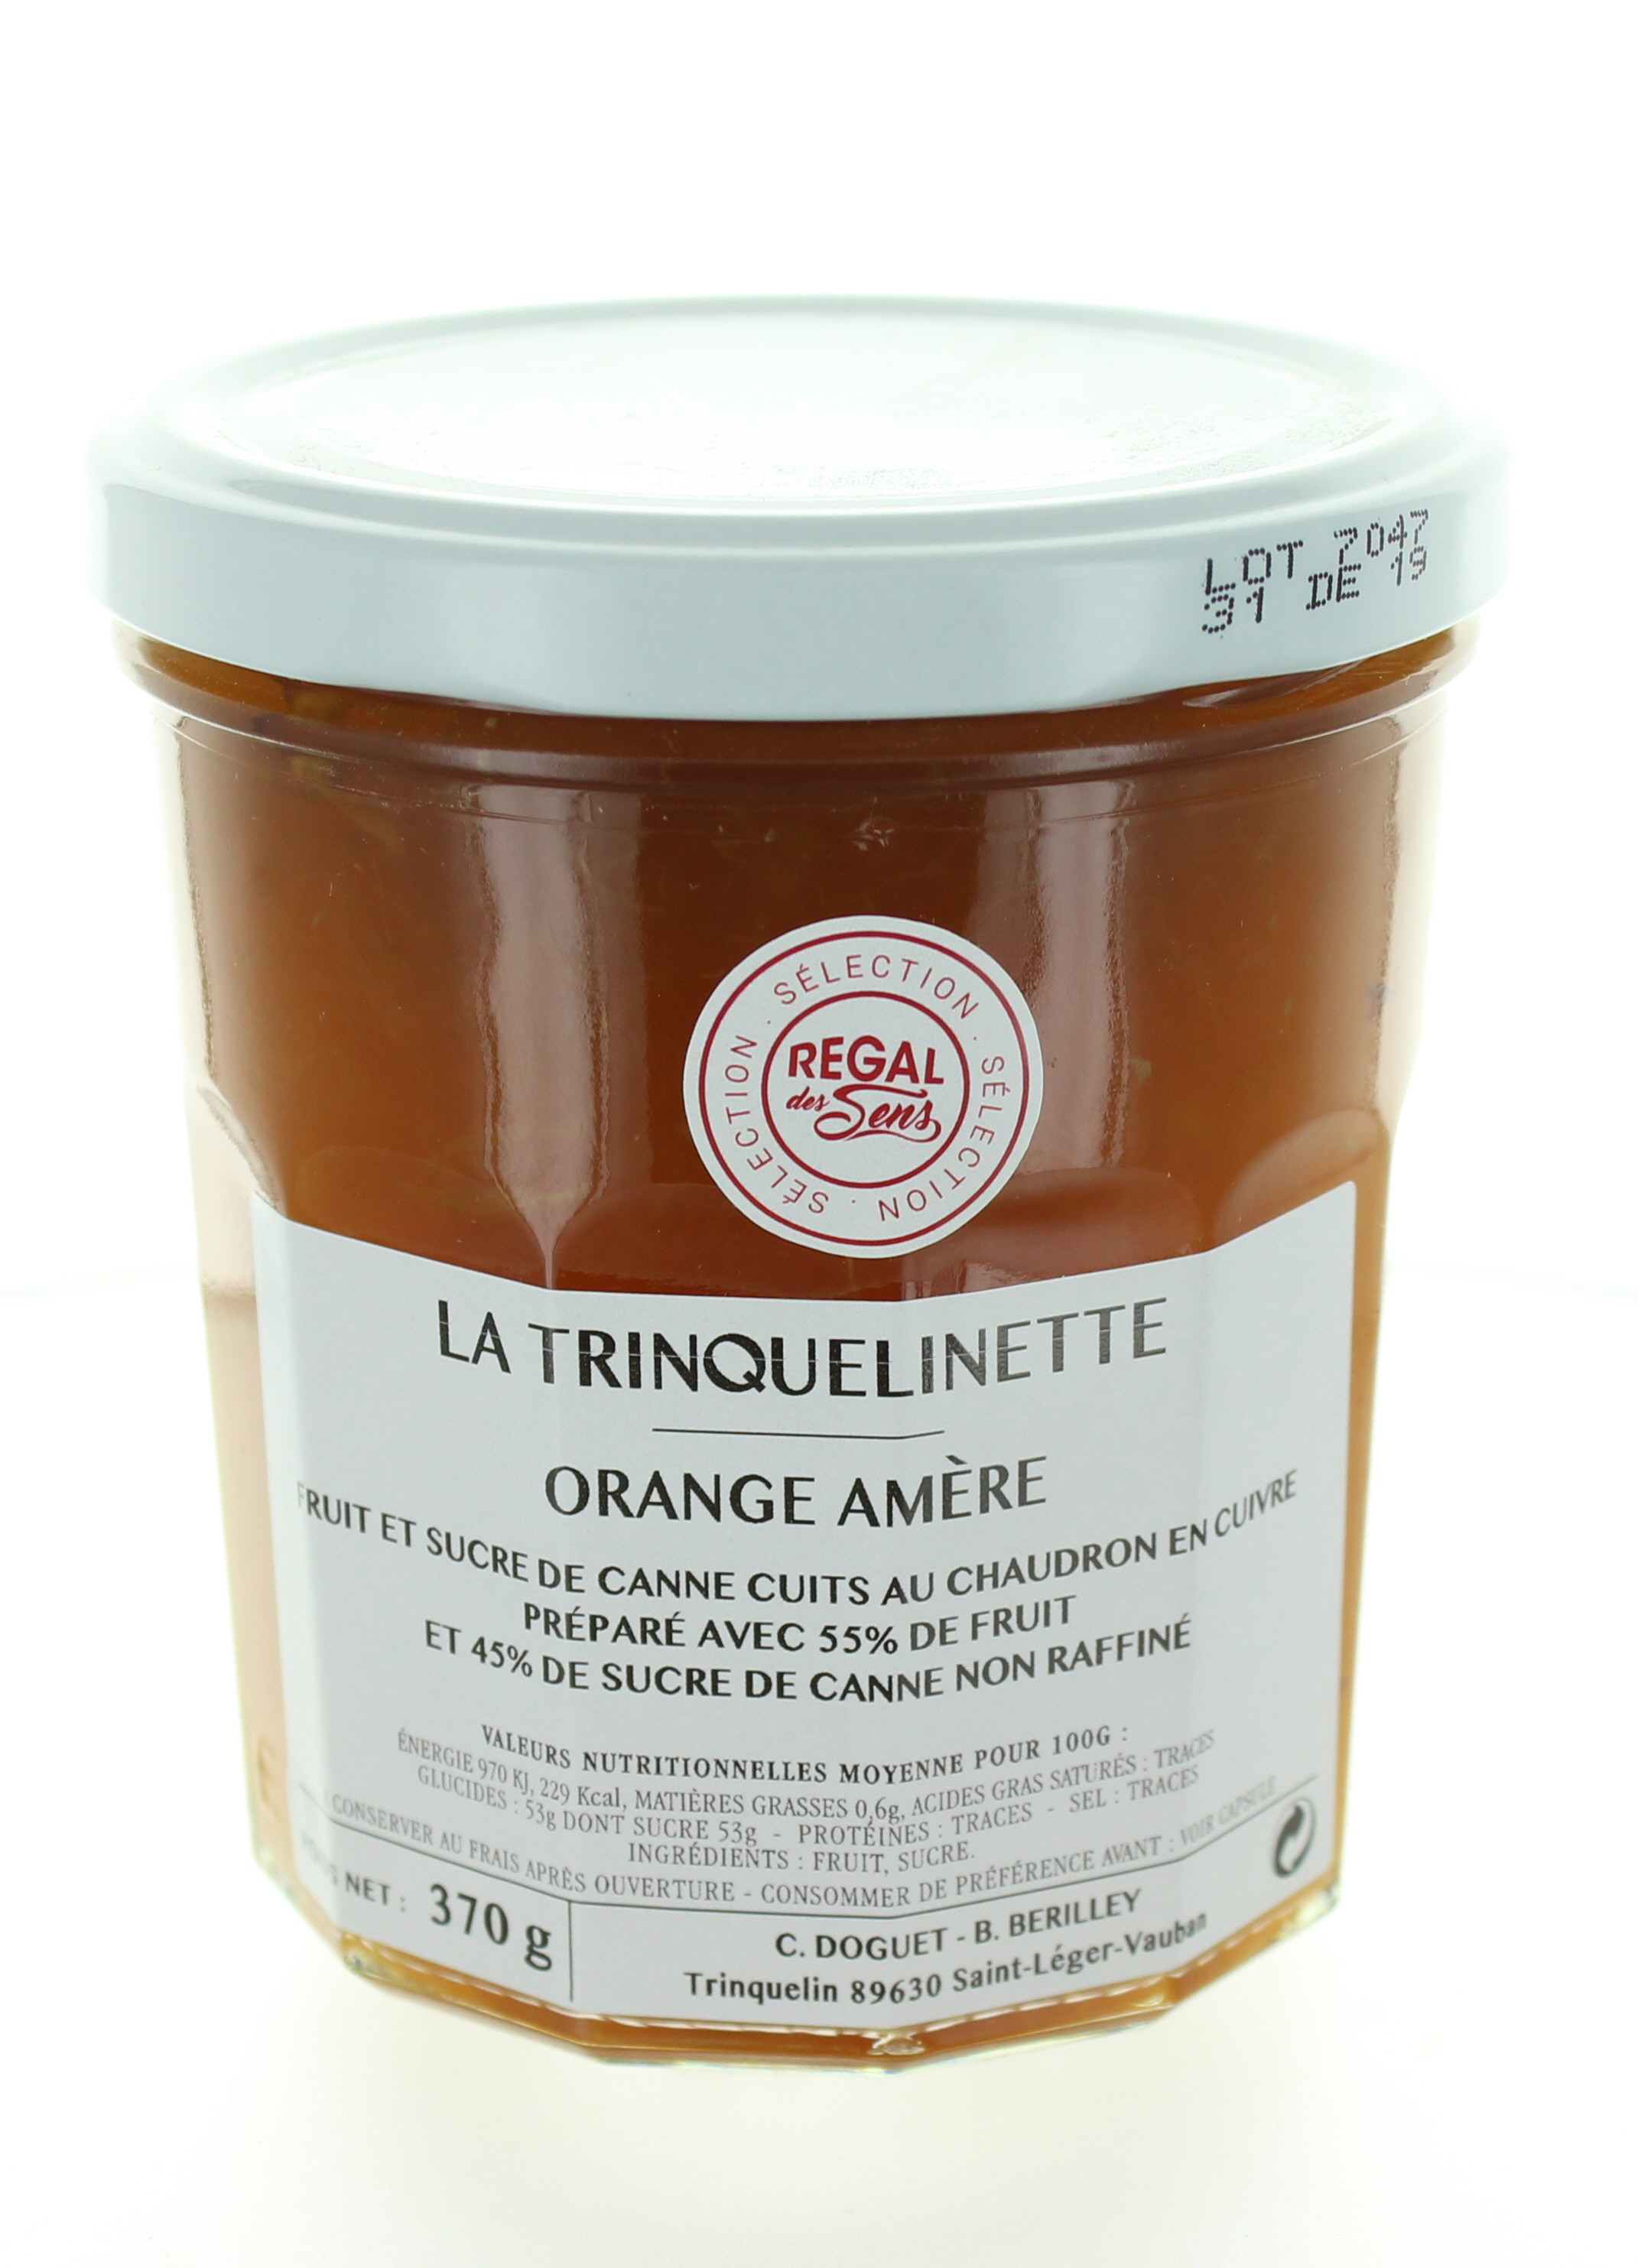 Confiture d'Orange amère - La trinquelinette